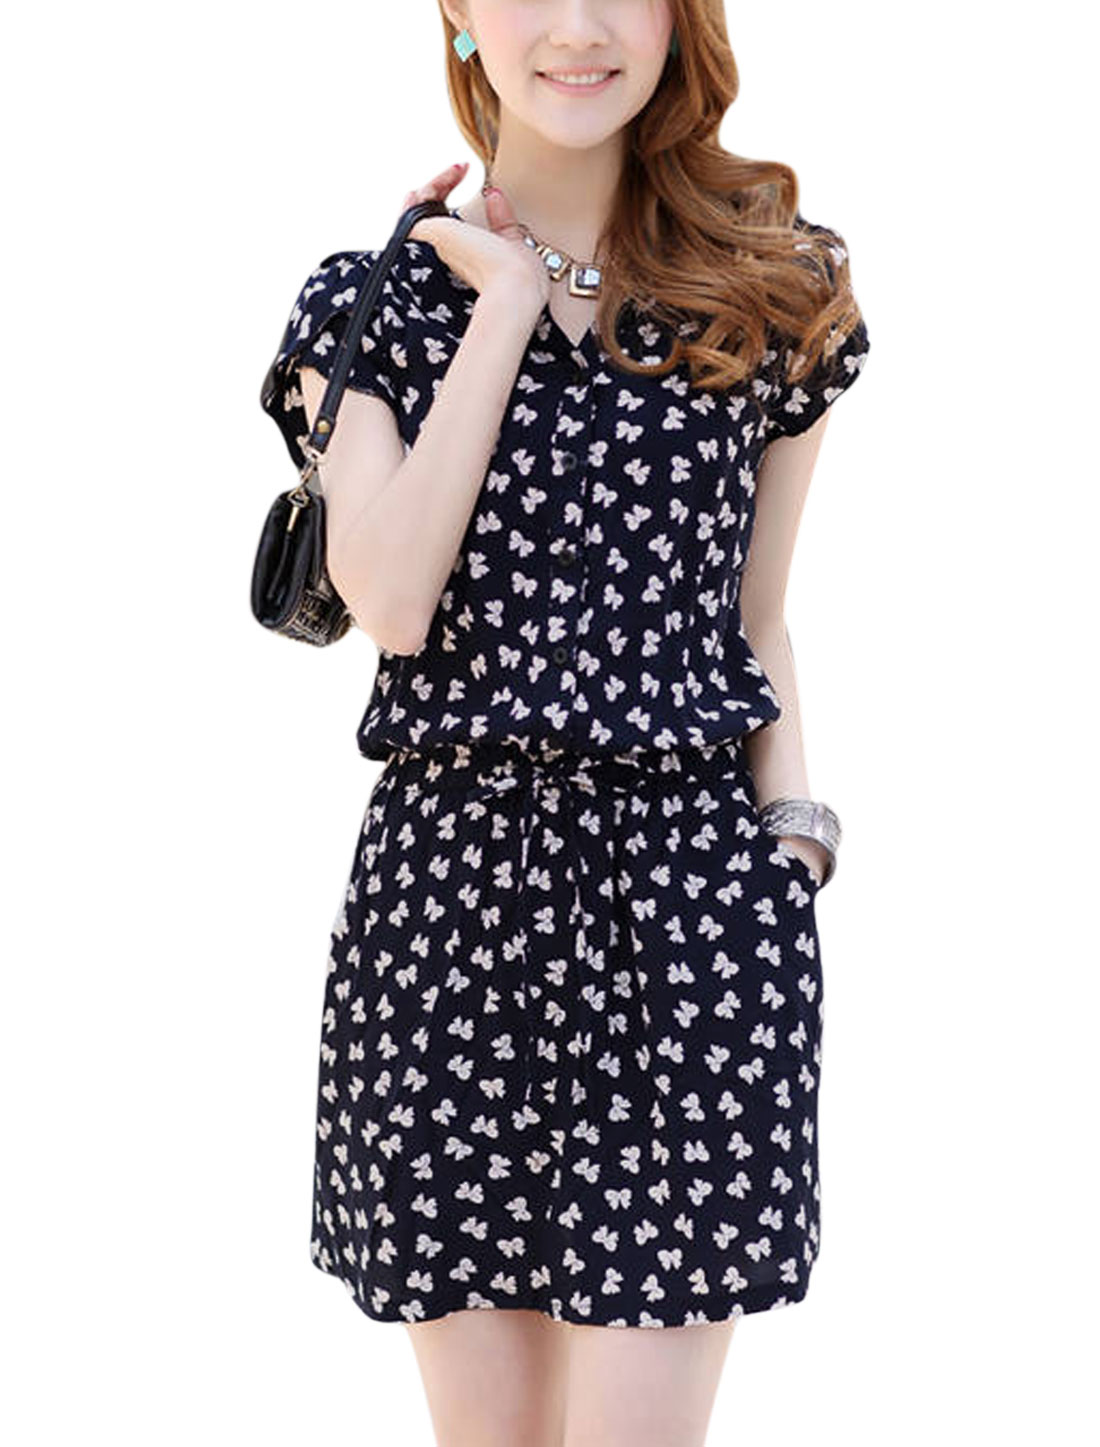 Women Stand Collar Short Sleeves Bowknot Prints Casual Dresses Navy Blue XS